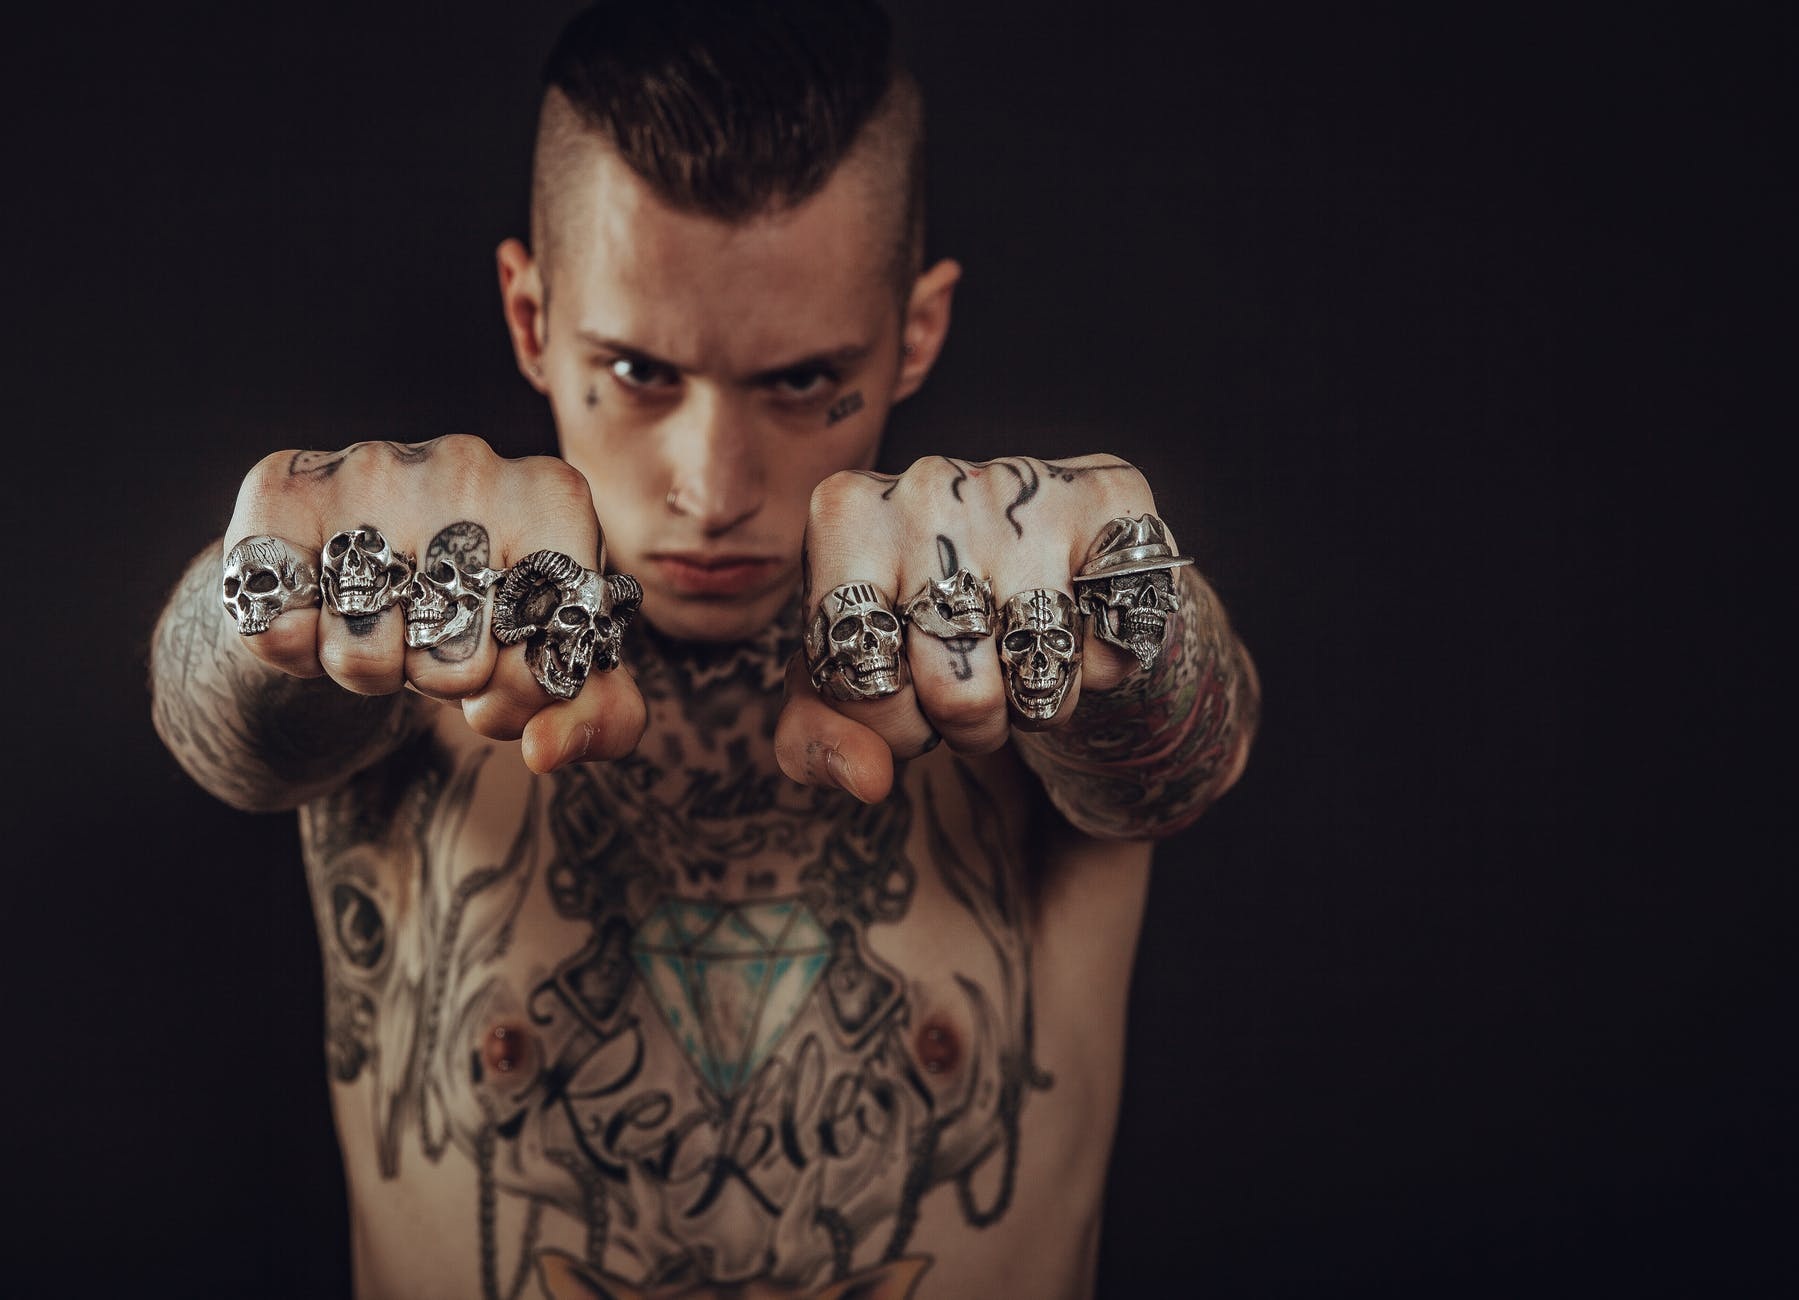 realistic tattoos of skulls in hands and upper body part